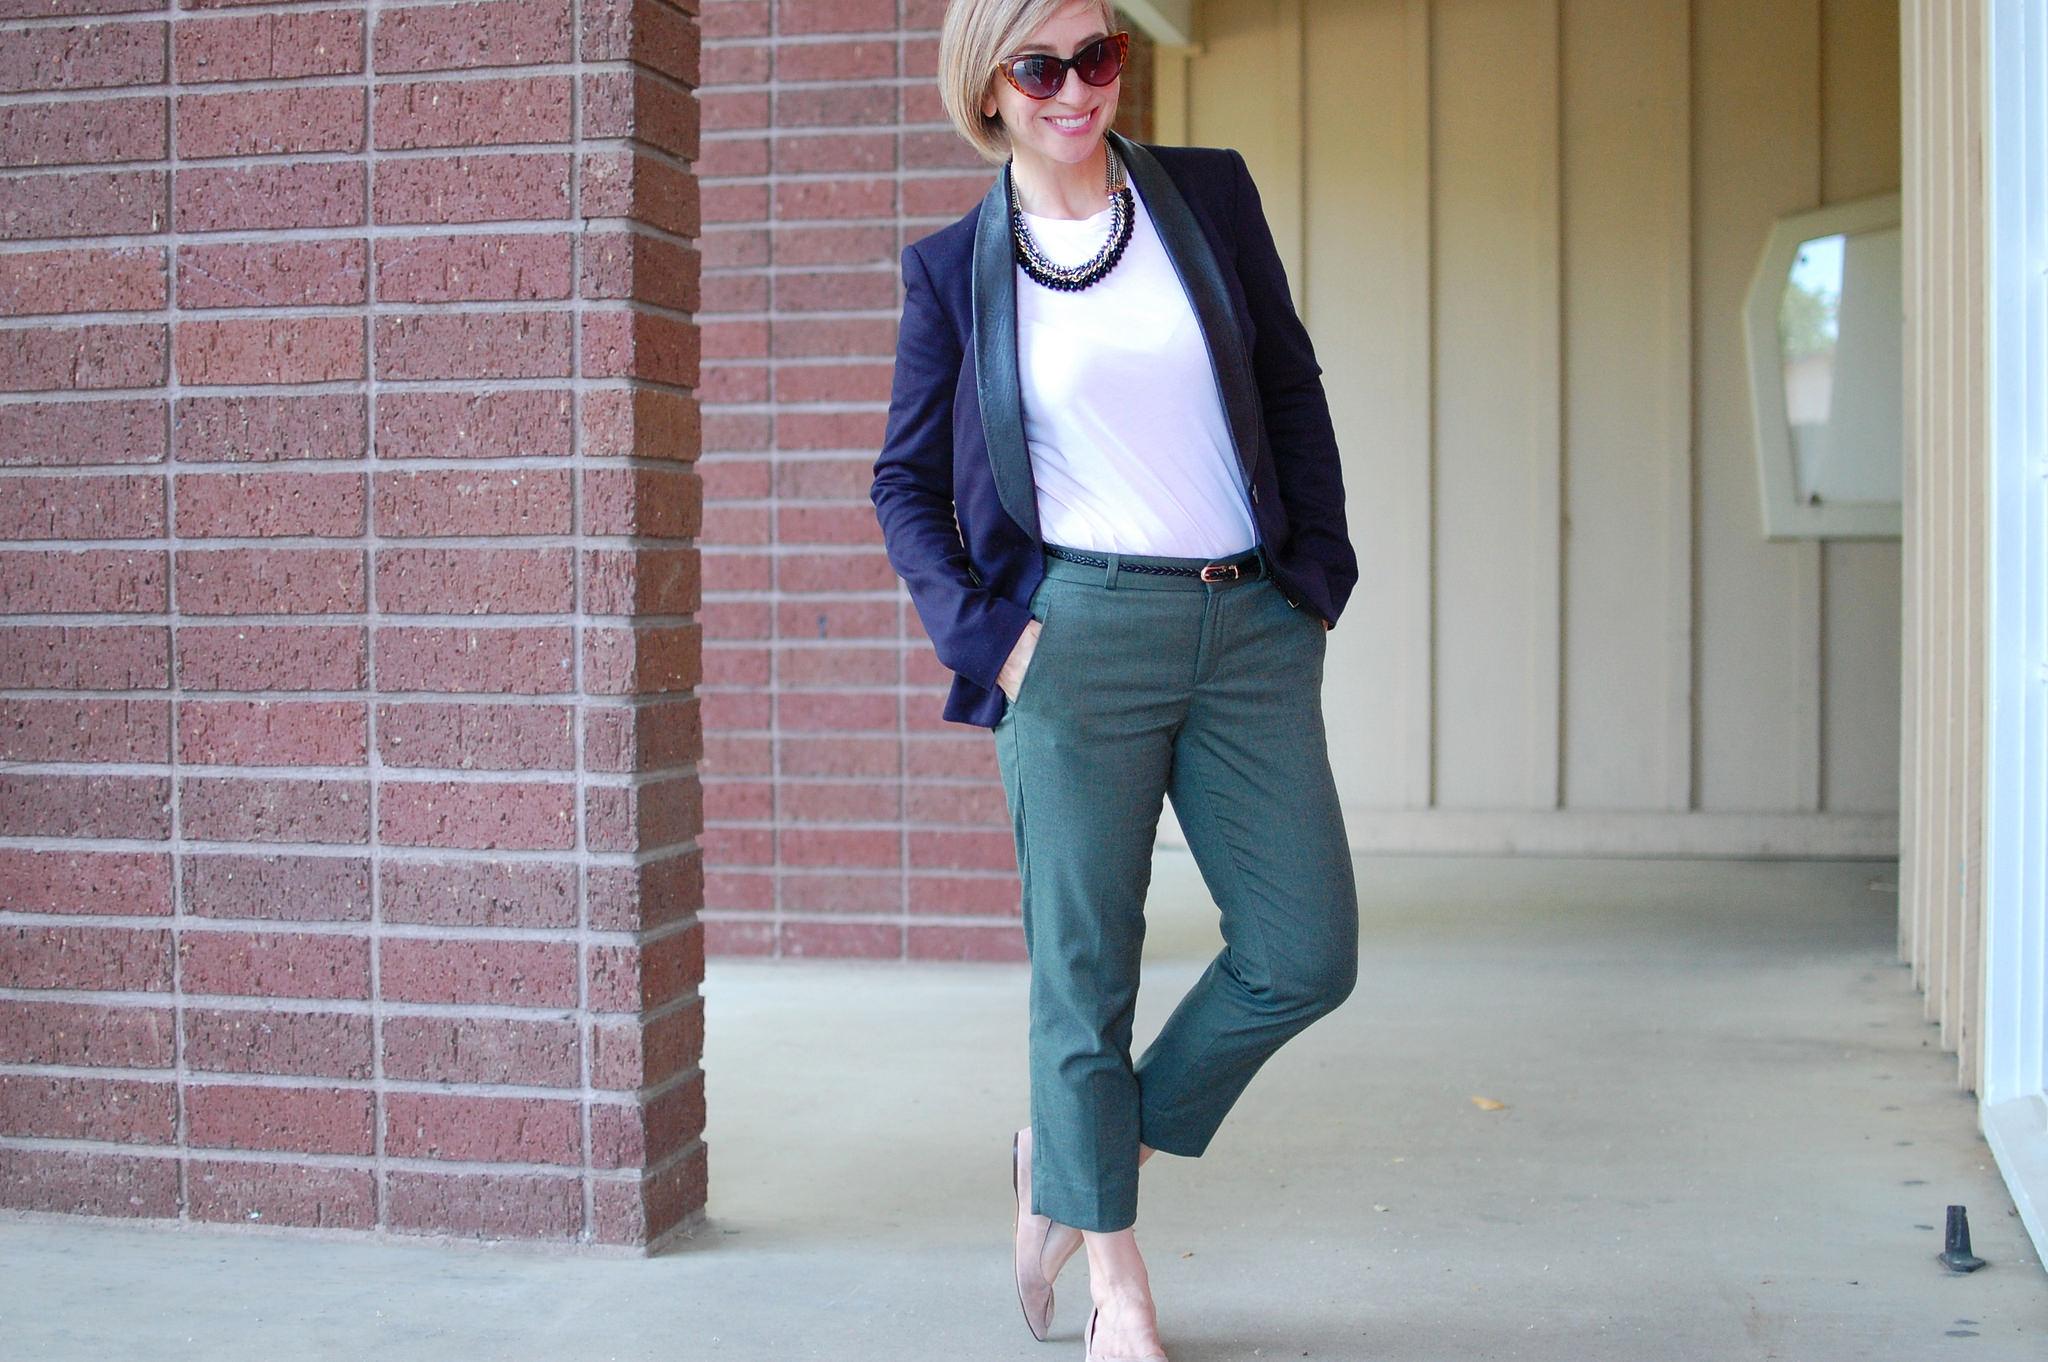 business casual formal black and navy leather lapel blazer olive cropped pants outfit ootd daily blogger whatiwore2day